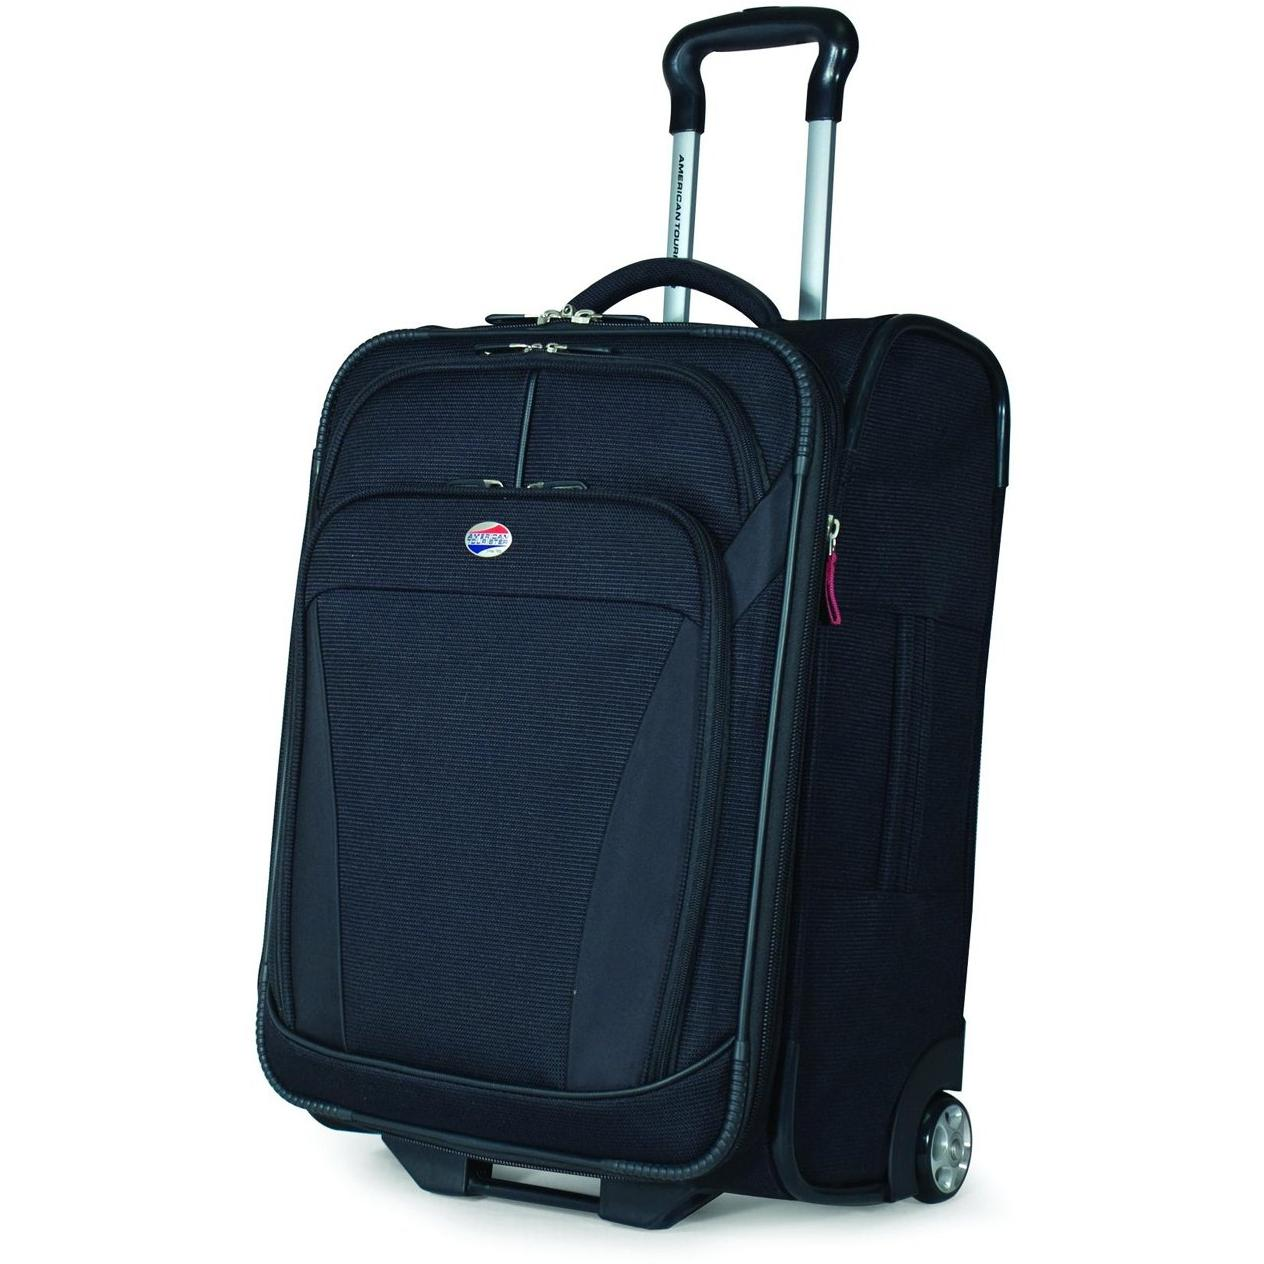 American Tourister ILite DLX 21 Inch Carry-On Rolling Luggage - Black